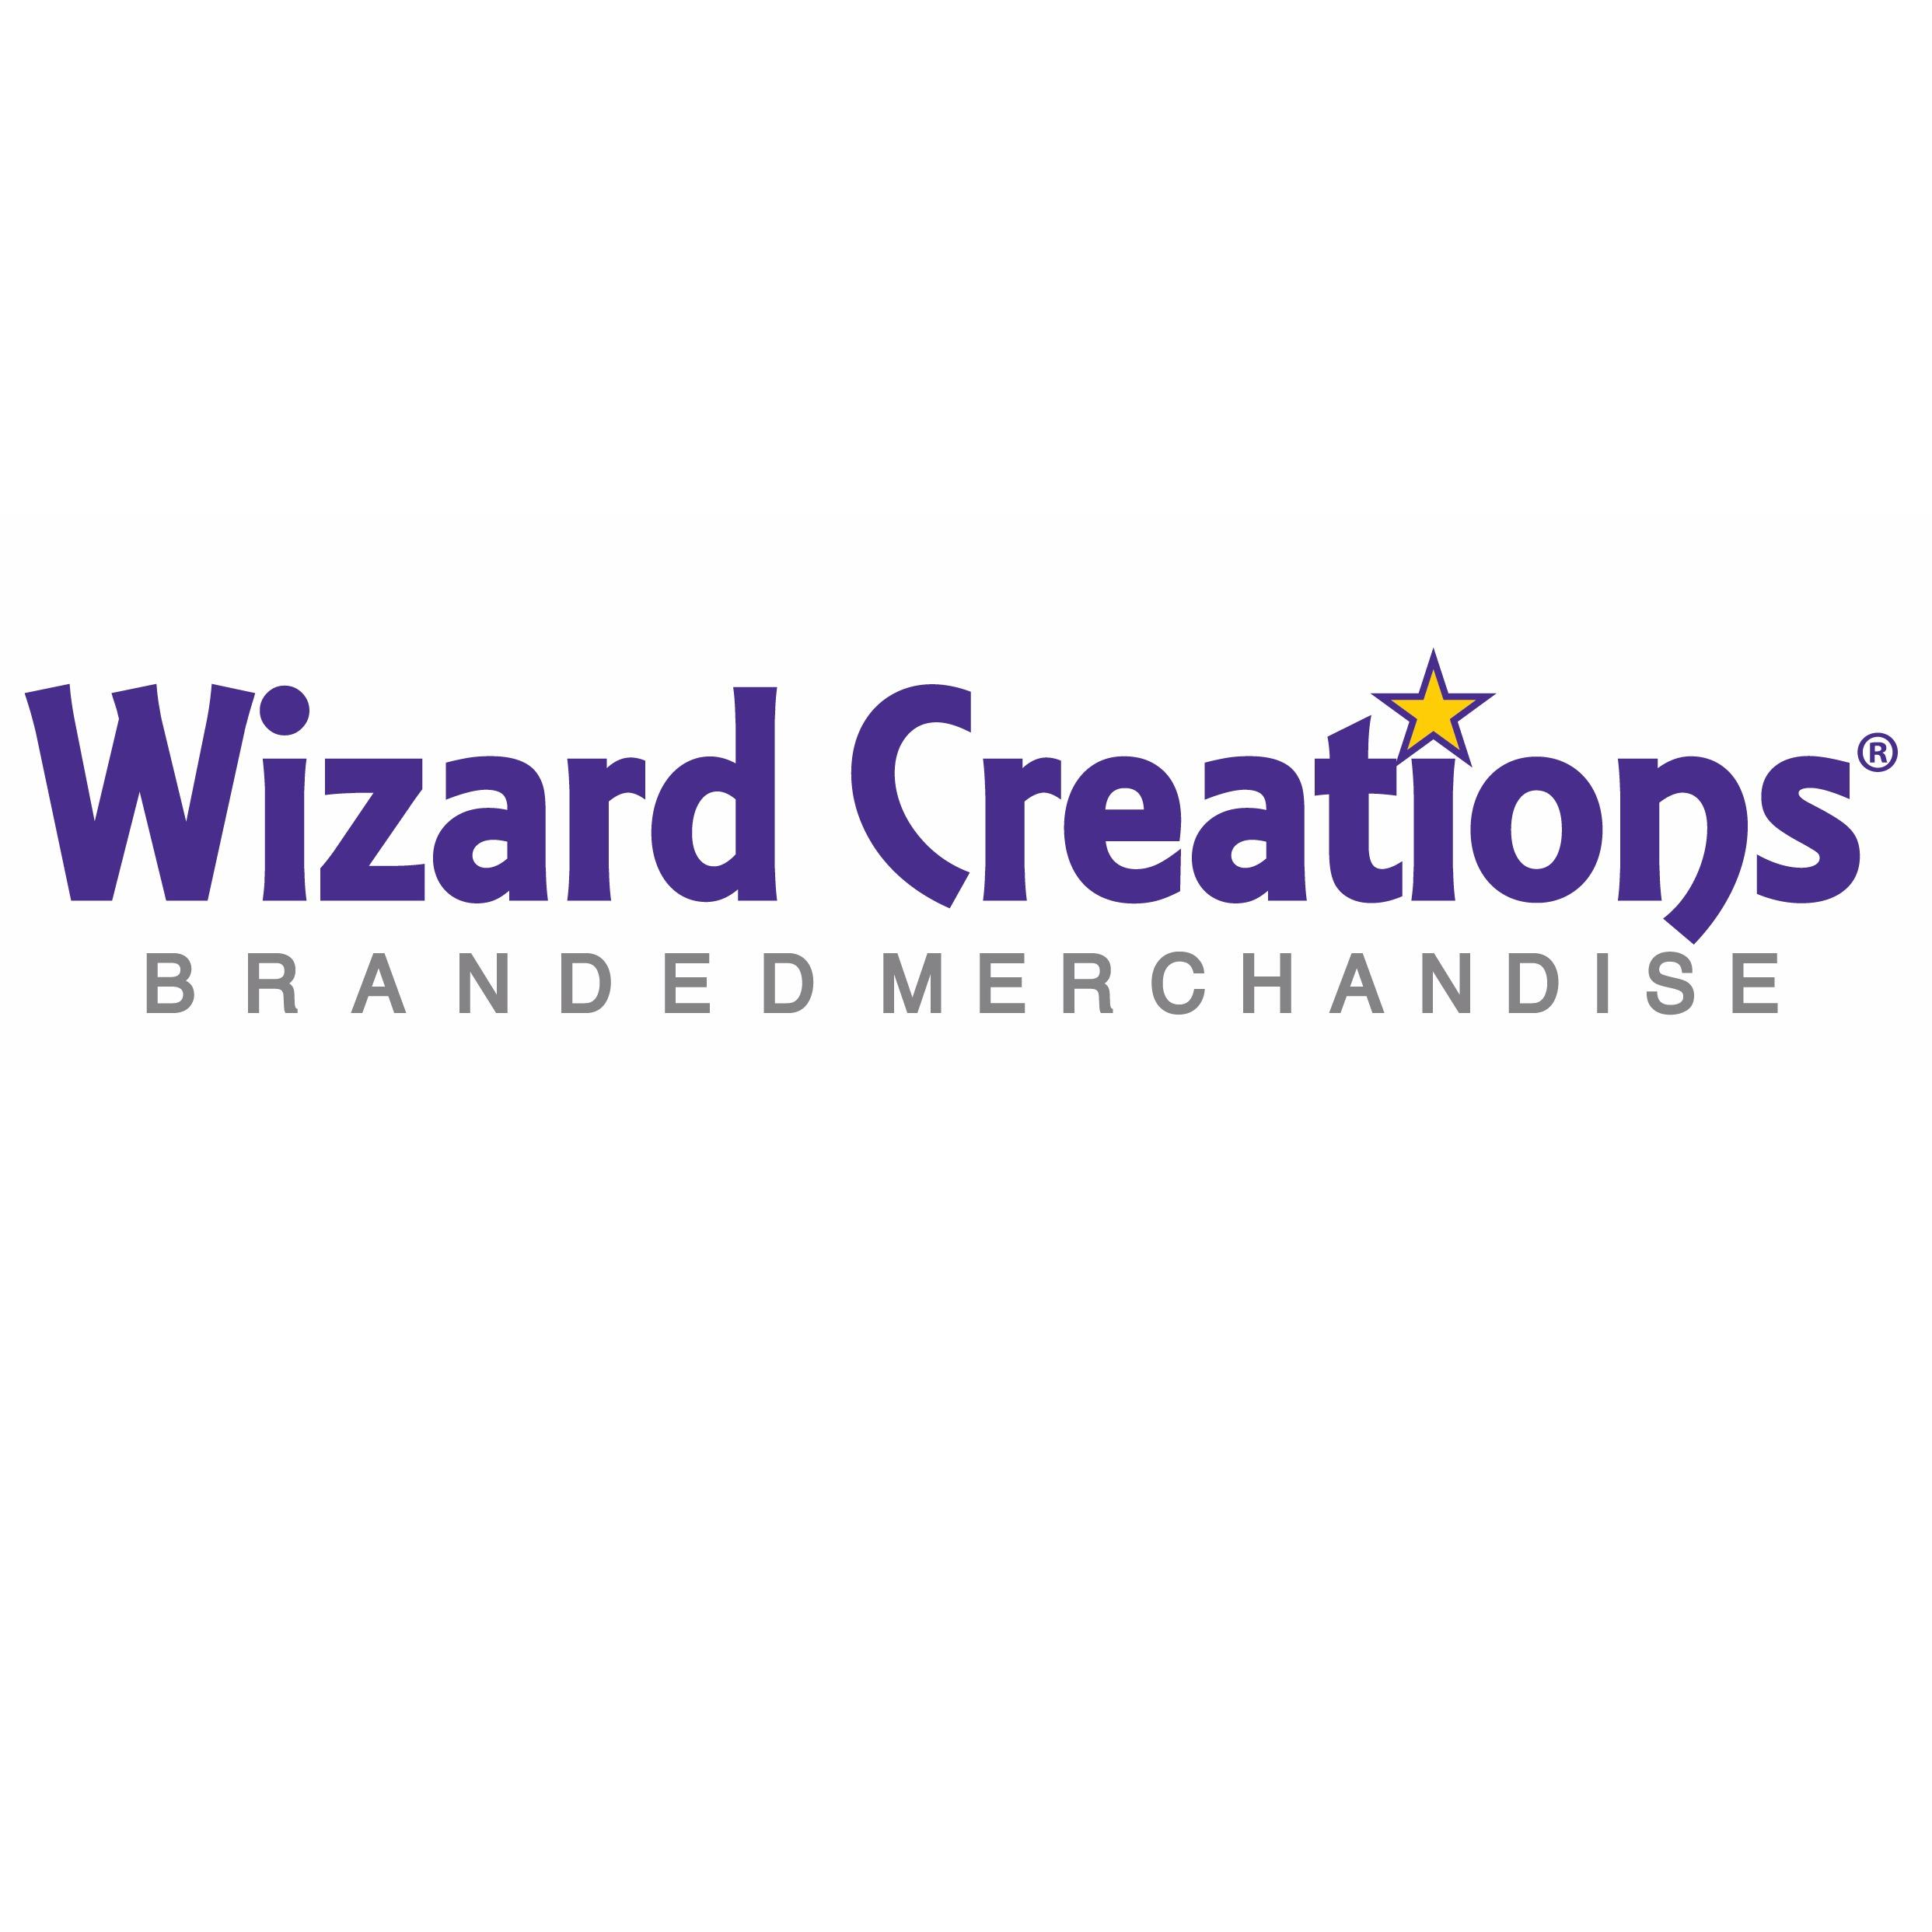 Wizard Creations